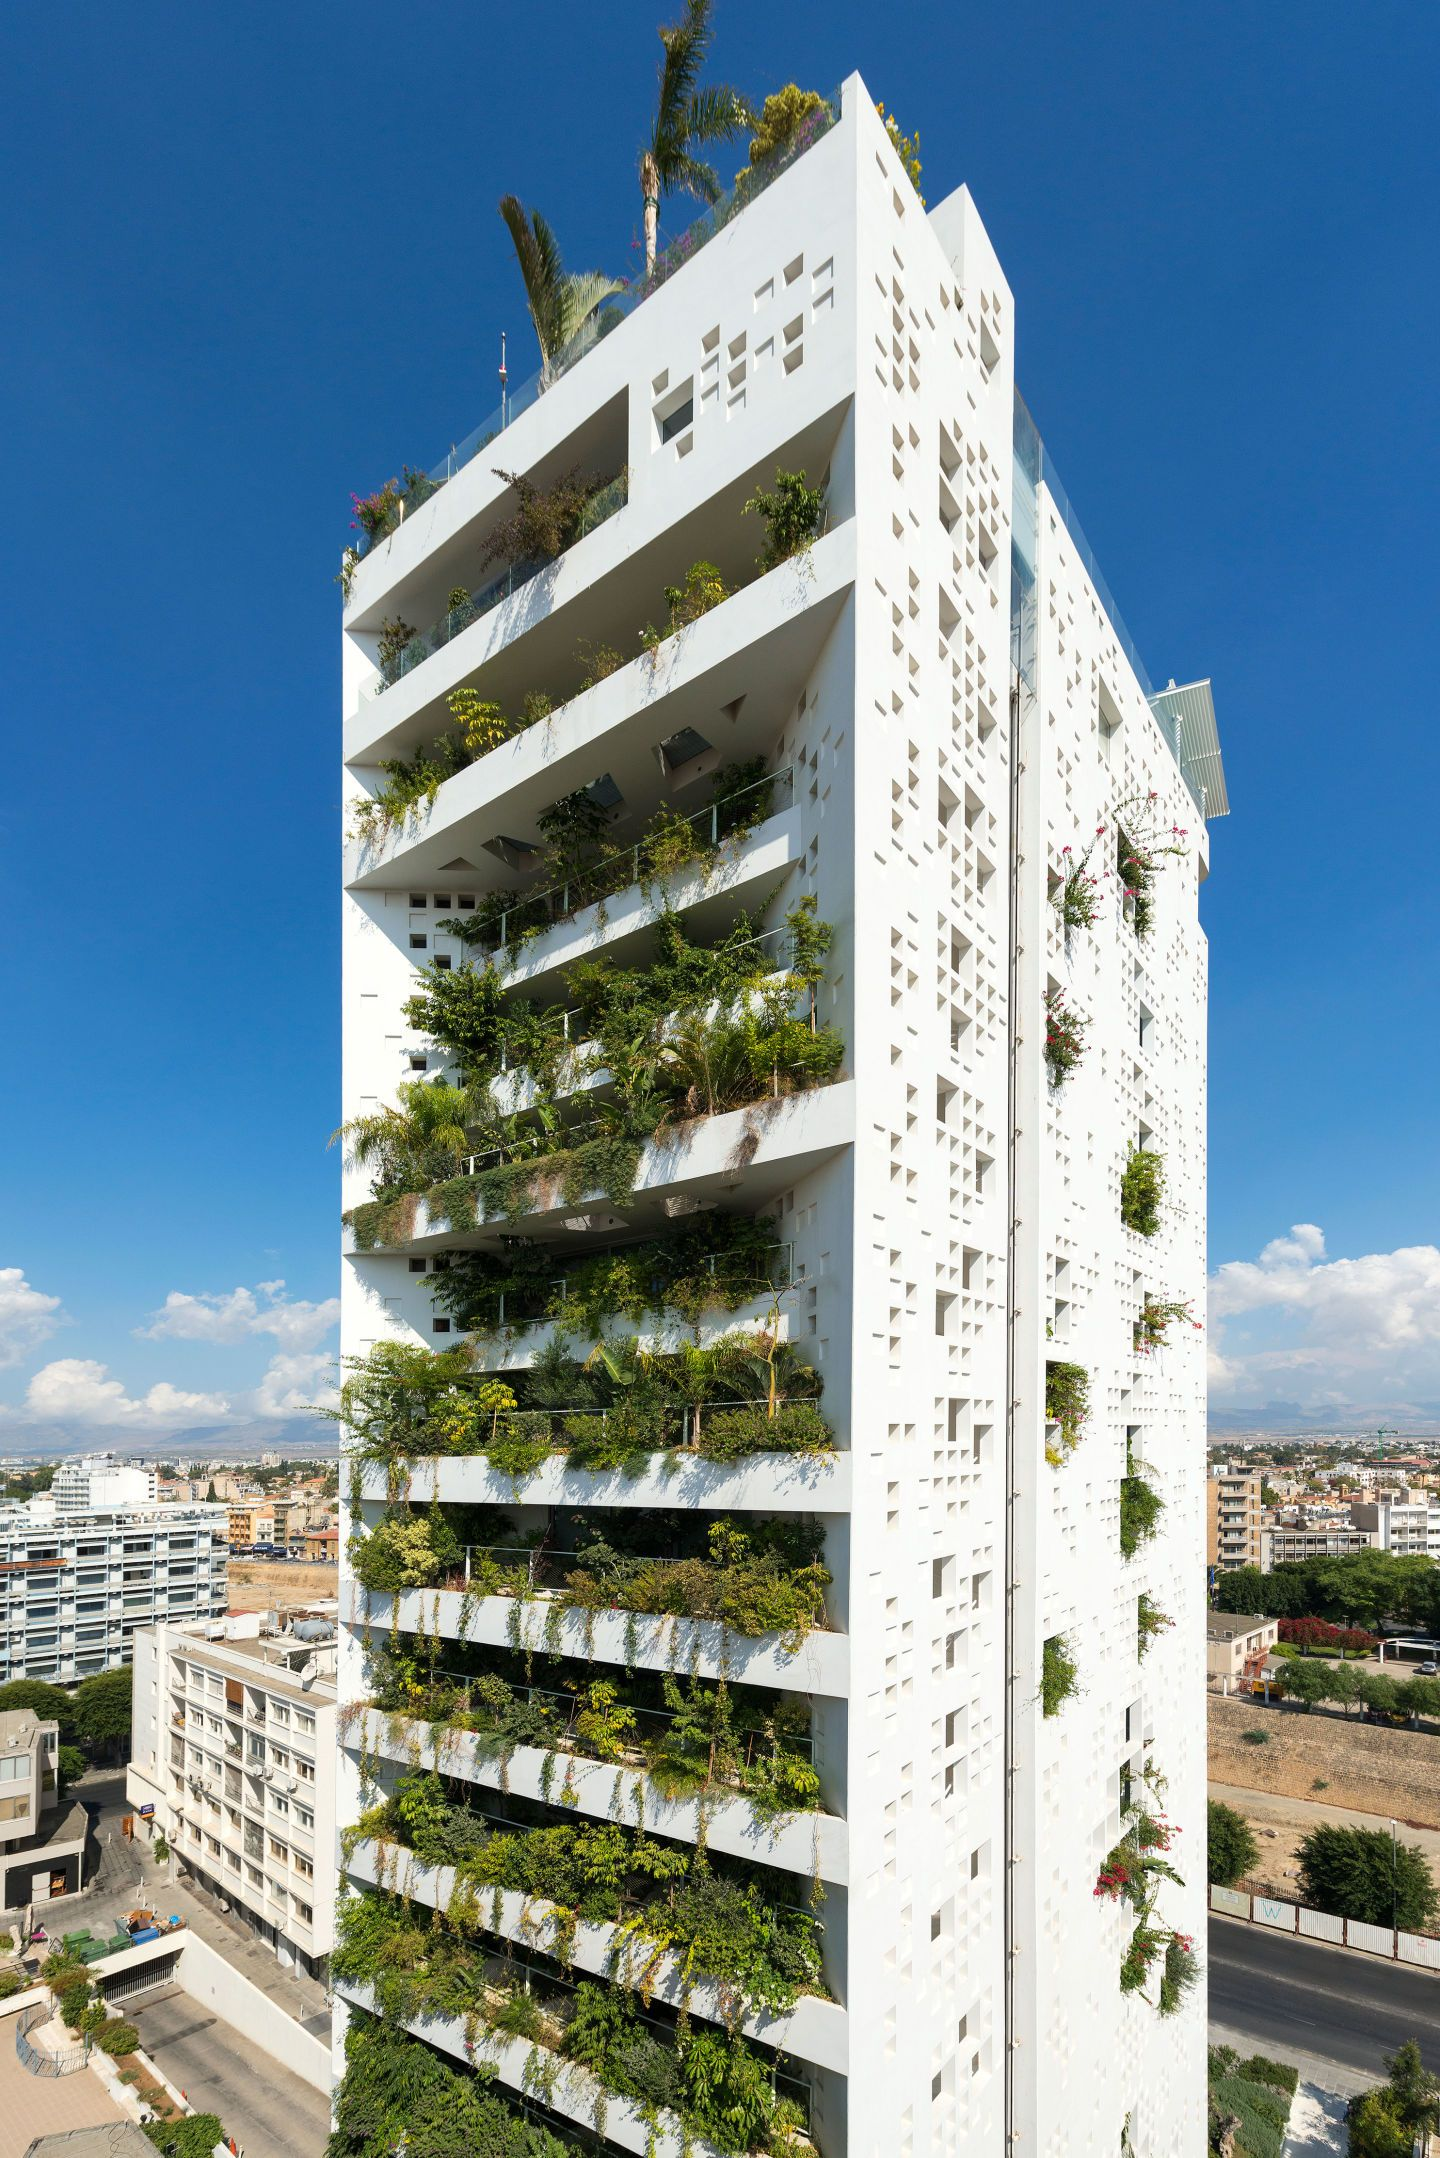 """To suit Cyprus Mediterranean climate Ateliers Jean Nouvel designed the building around what it describes as a """"natural brise soleil"""" – a facade where"""